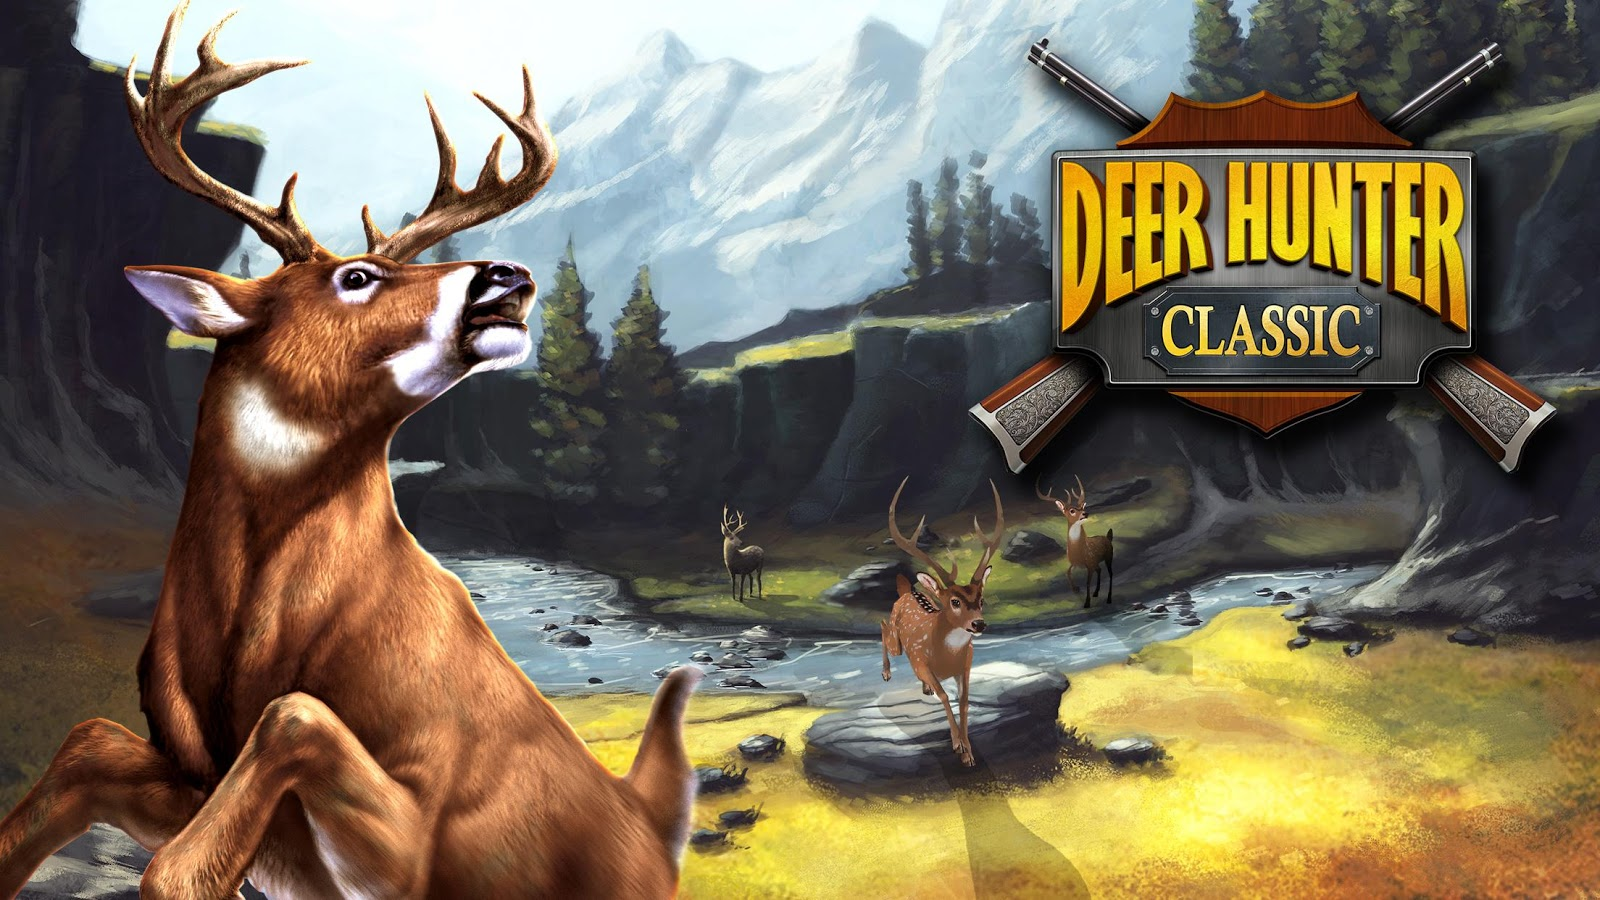 DEER HUNTER CLASSIC Screenshot 11